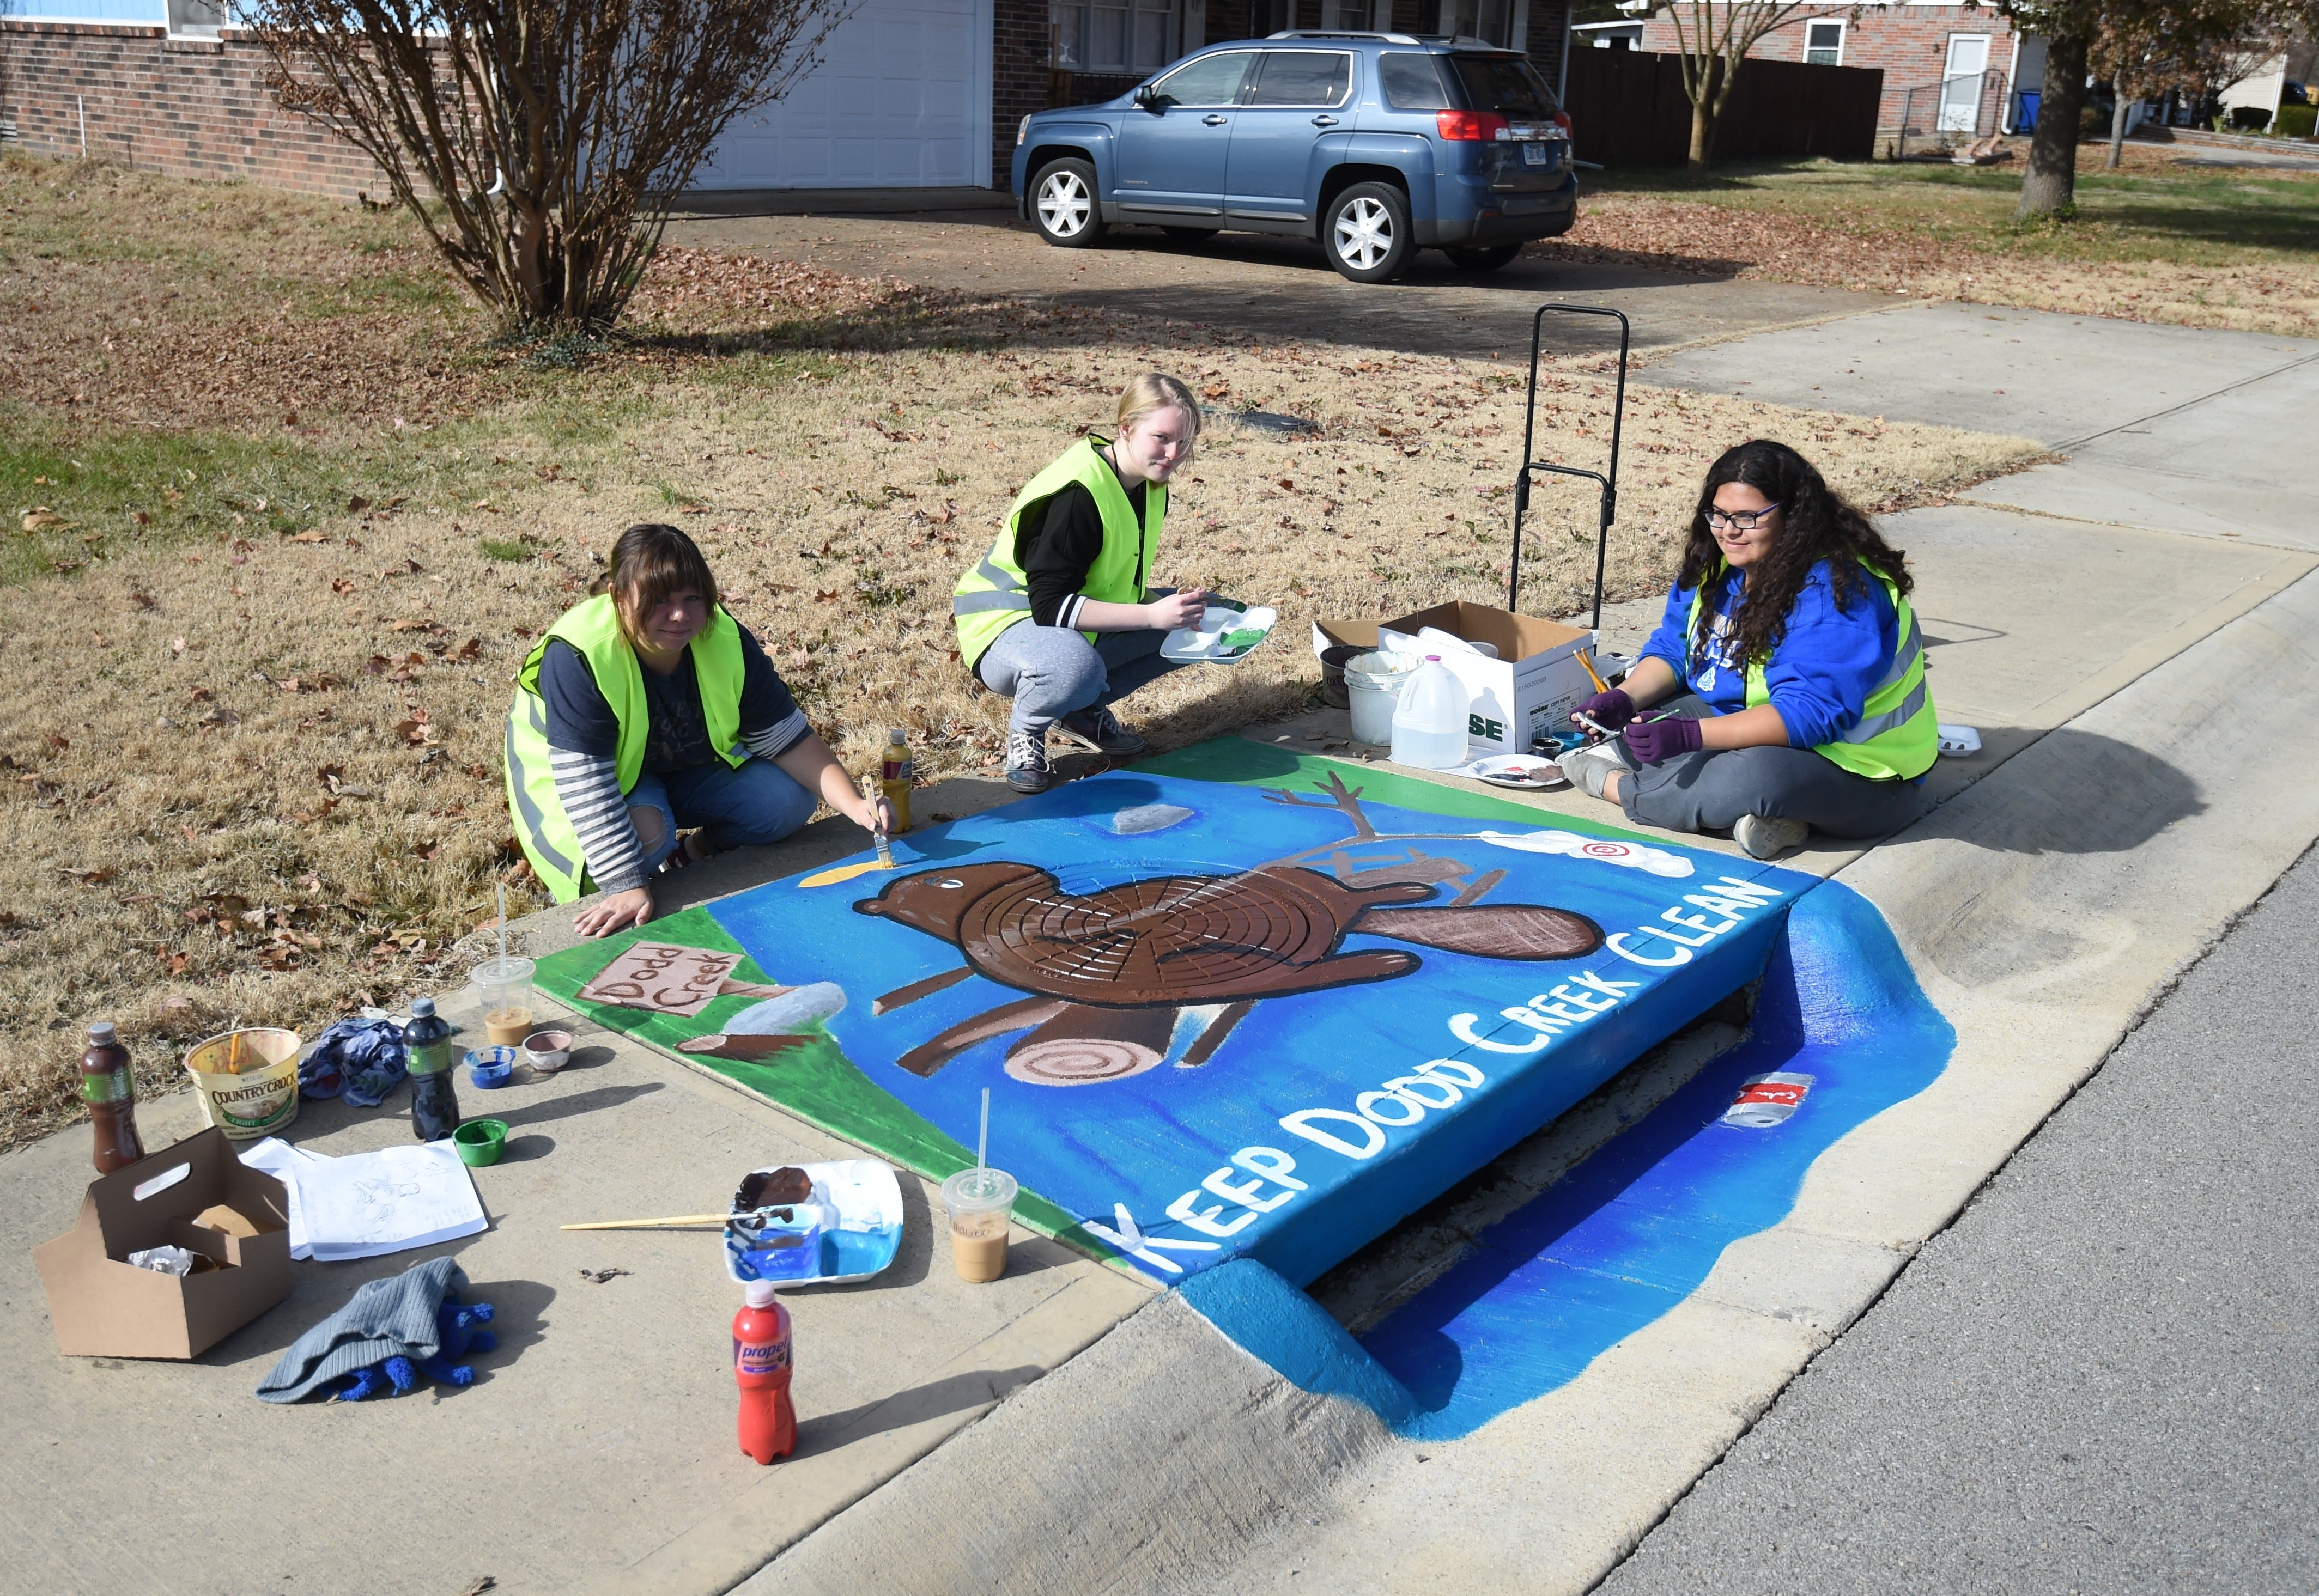 Mountain Home High School students (from left) senior Amberly Schaffer, junior Kaitlyn Miller and senior Saidi Villalvazo work on their storm drain artwork on Nov. 18. The ongoing 'Paint the Drain' program has Mountain Home High School students decorating the stormwater drains along Bomber Boulevard with eco-friendly artwork and messages.